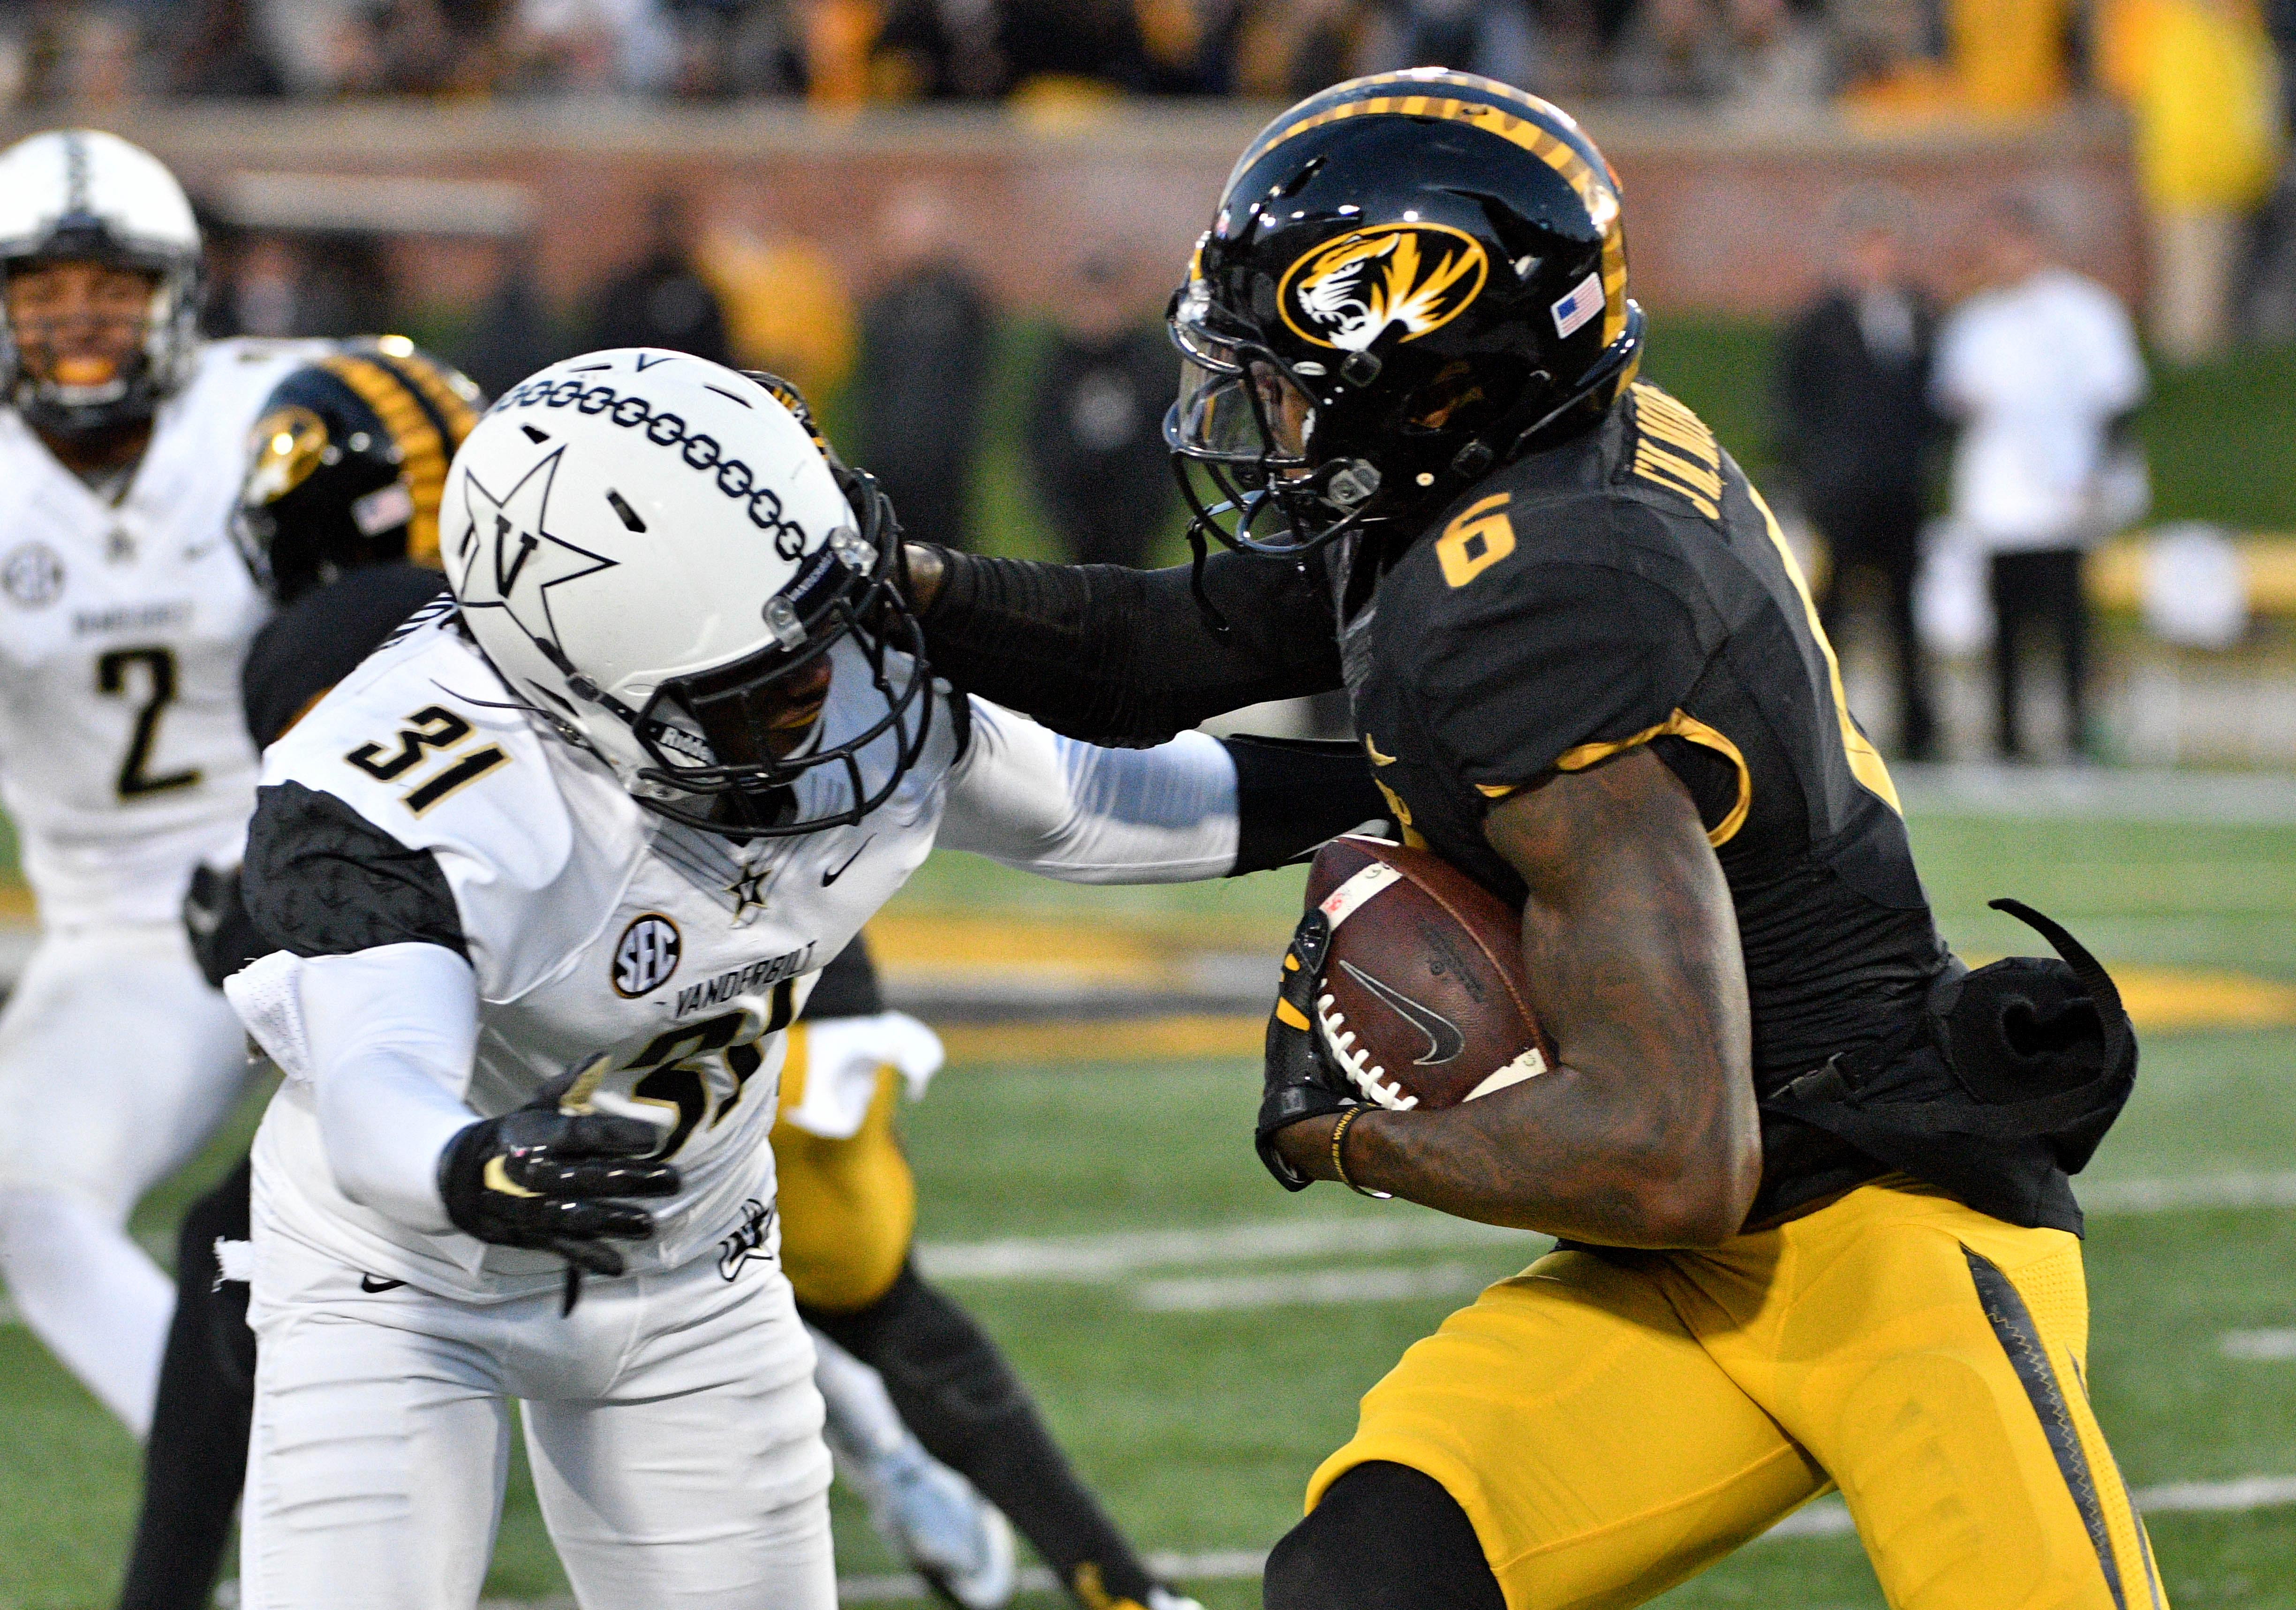 Missouri Football 2017: J'Mon Moore and the wide receivers ...